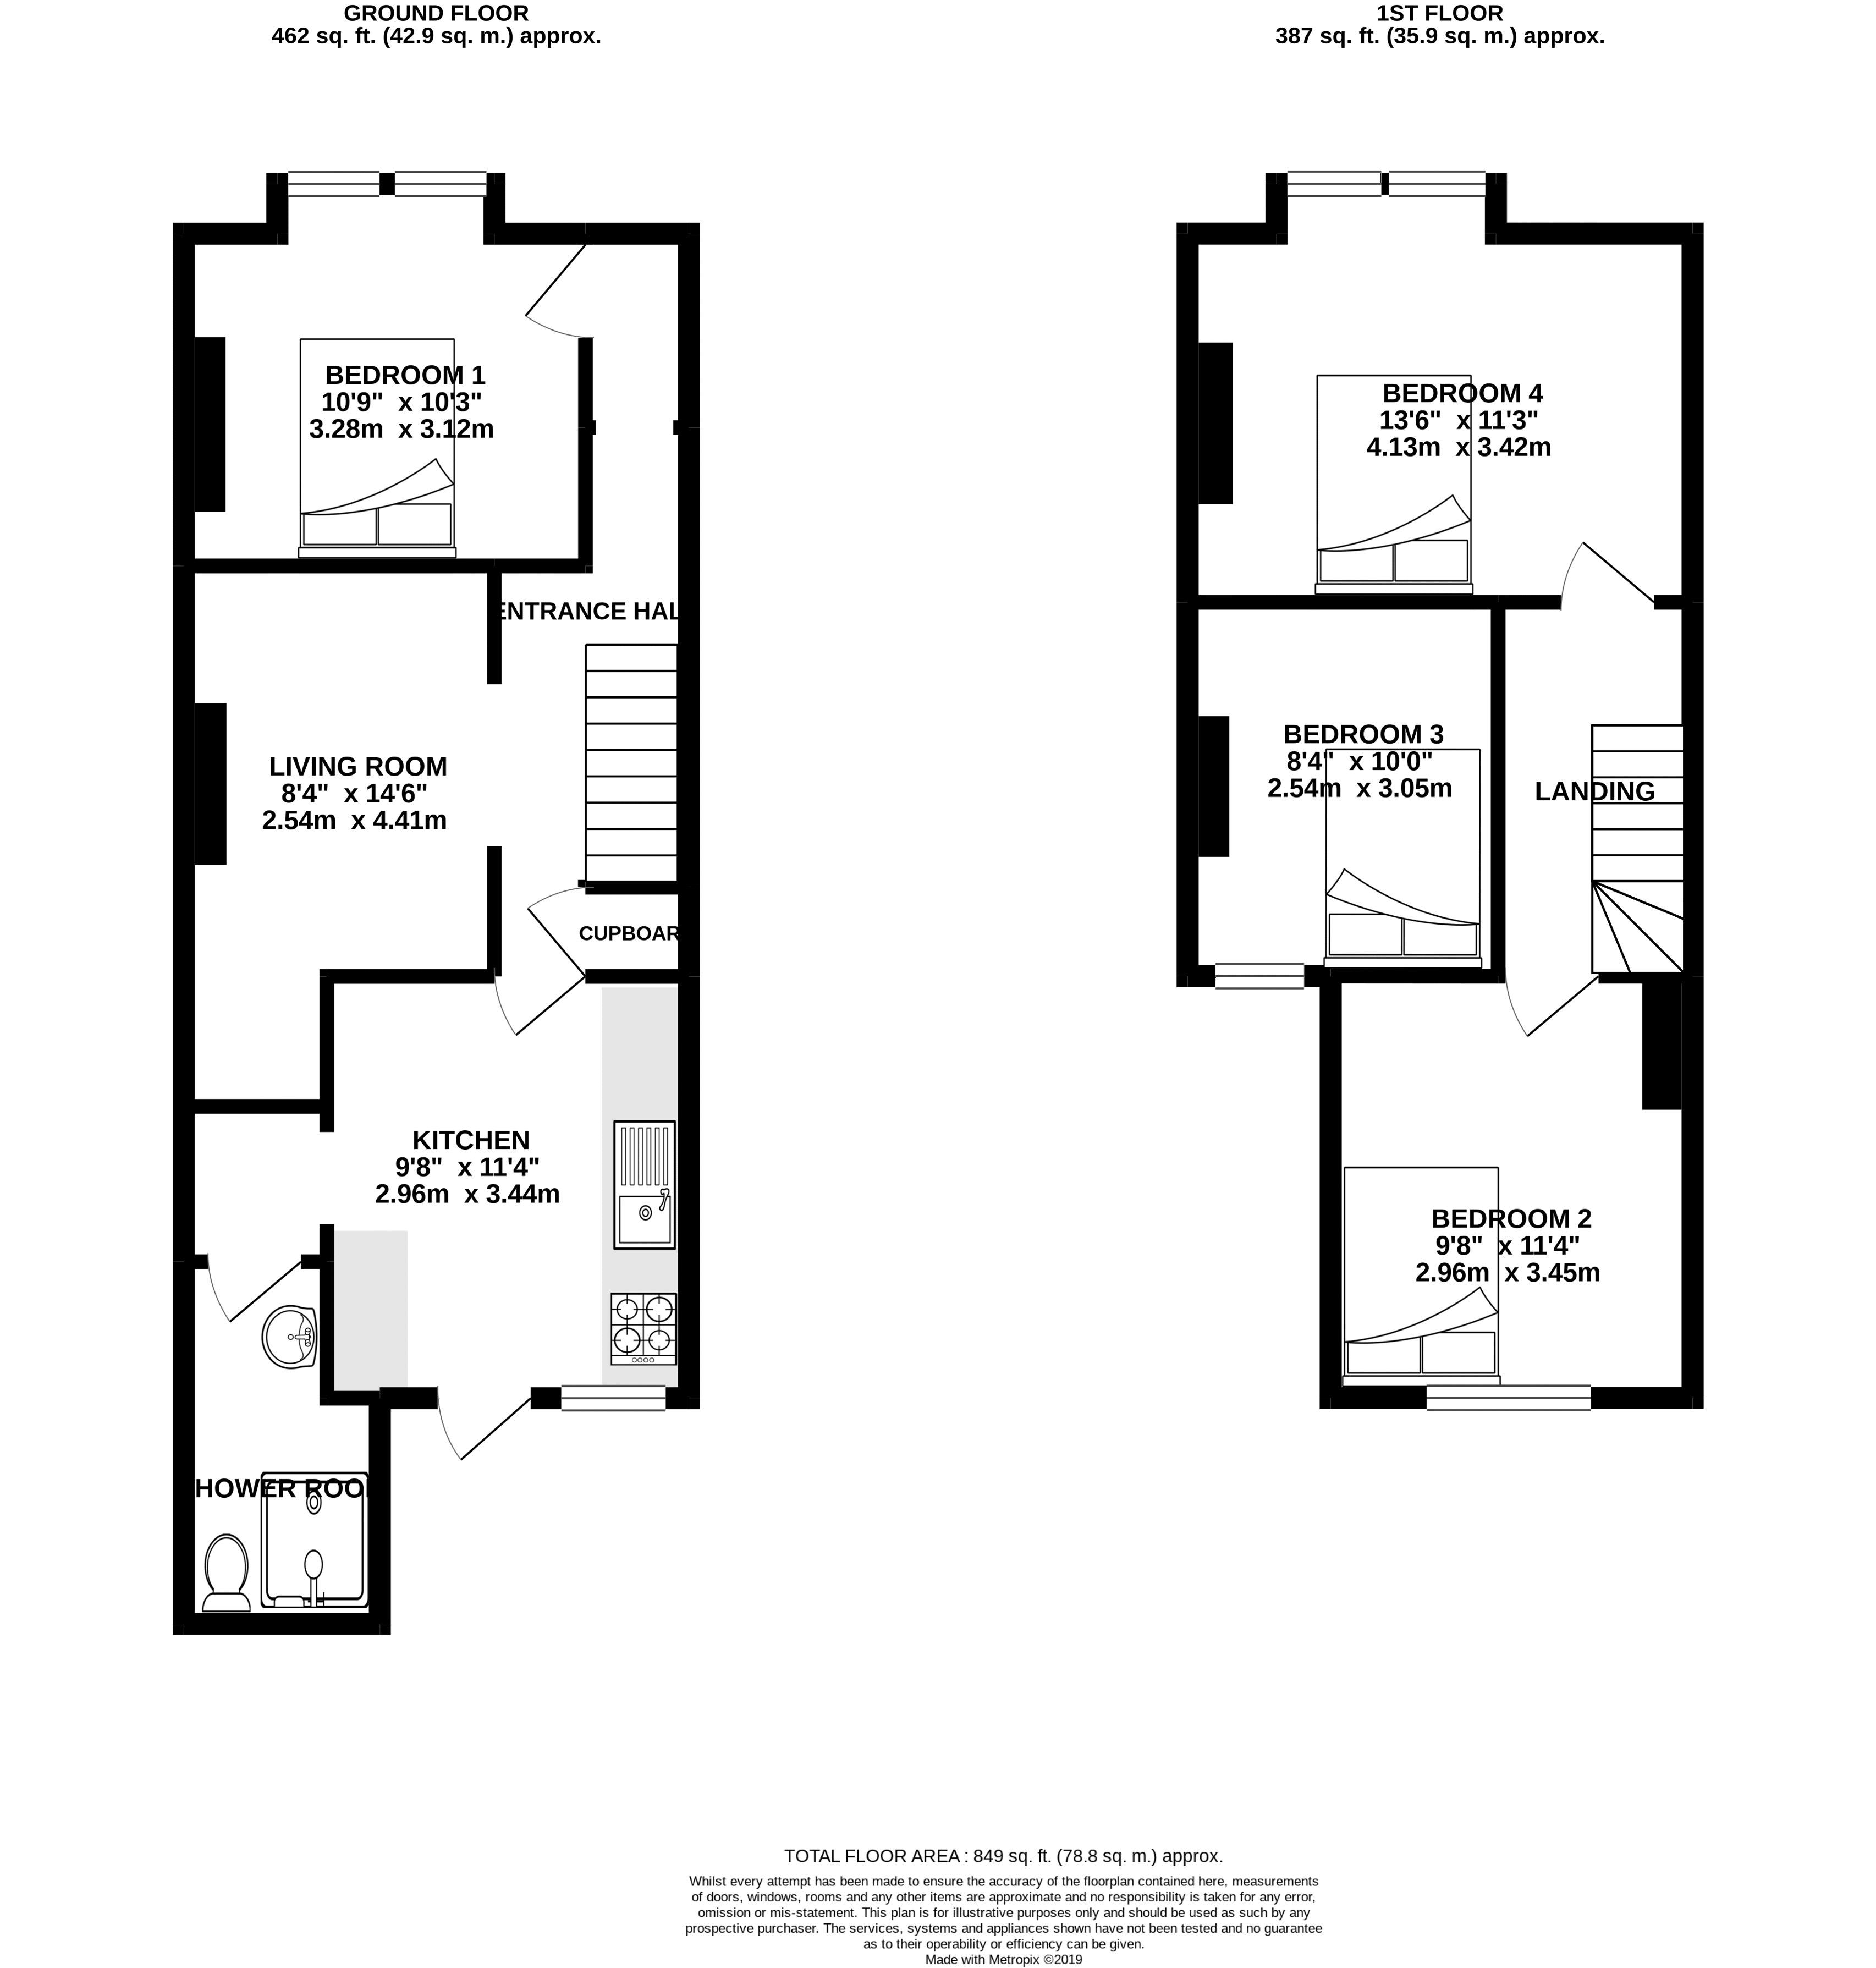 Floor plans for Coombe Terrace, Brighton property for sale in Lewes Road South, Brighton by Coapt